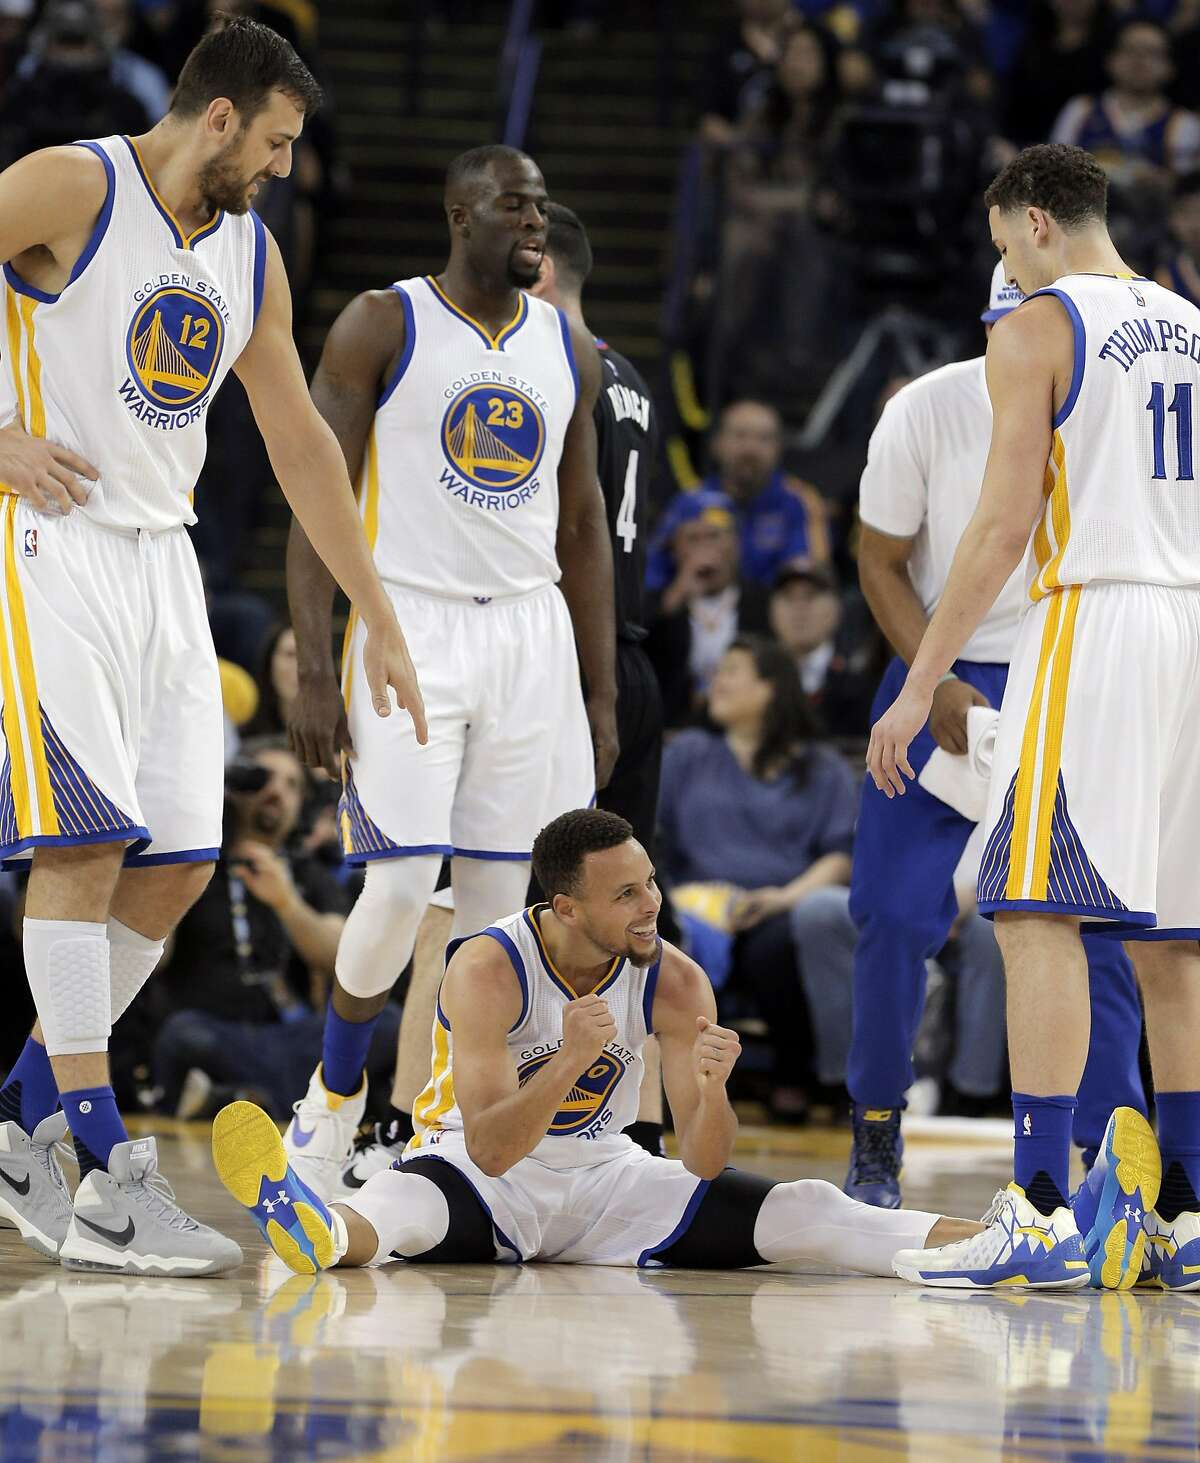 Stephen Curry (30) reacts to being called for a foul after getting knocked down in the first half as the Golden State Warriors played the Los Angeles Clippers at Oracle Arena in Oakland, Calif., on Wednesday, March 23, 2016.